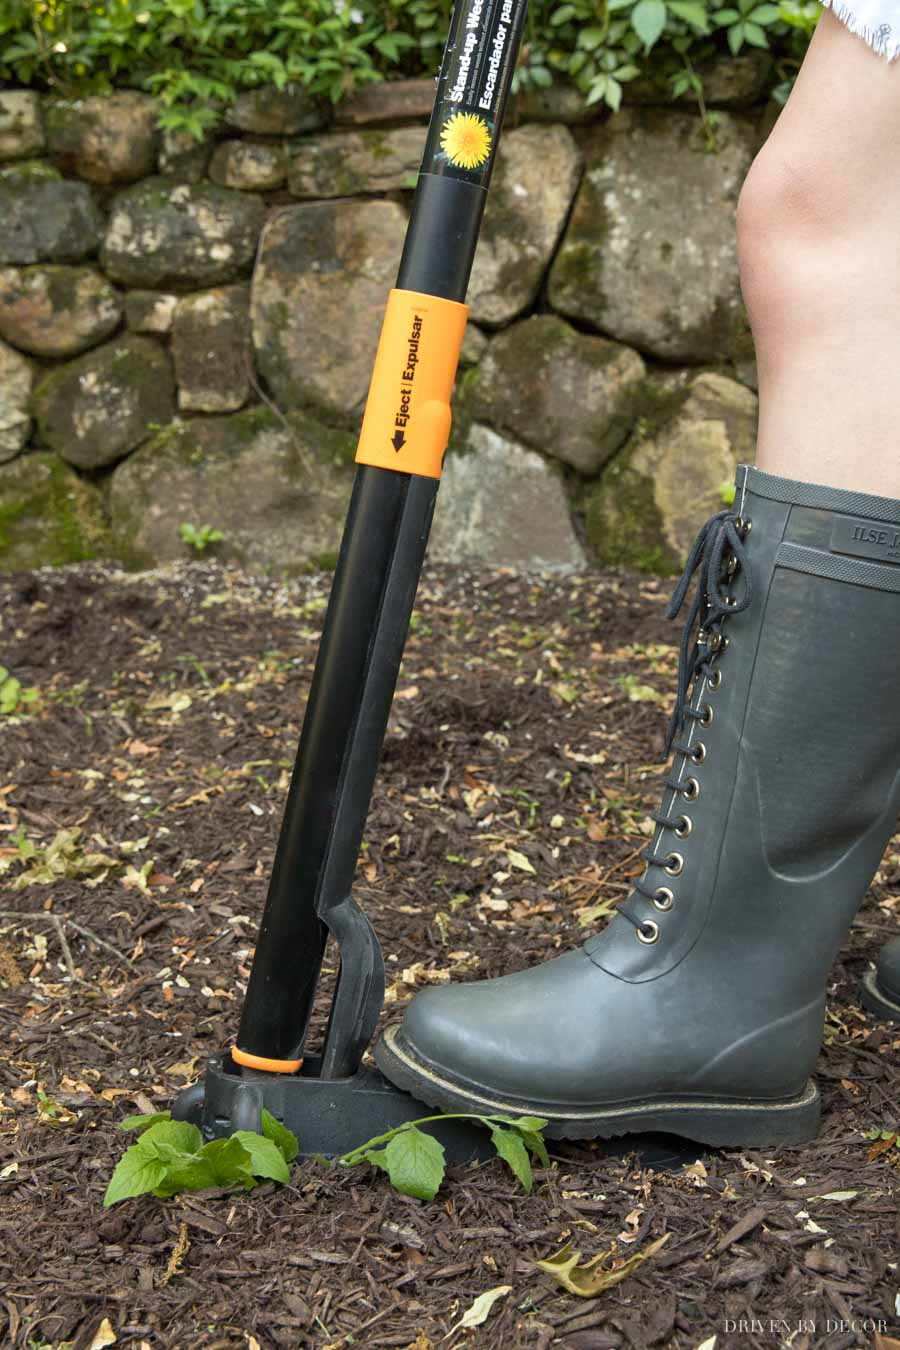 This stand-up weeder is the BEST! Works so well and saves your back!